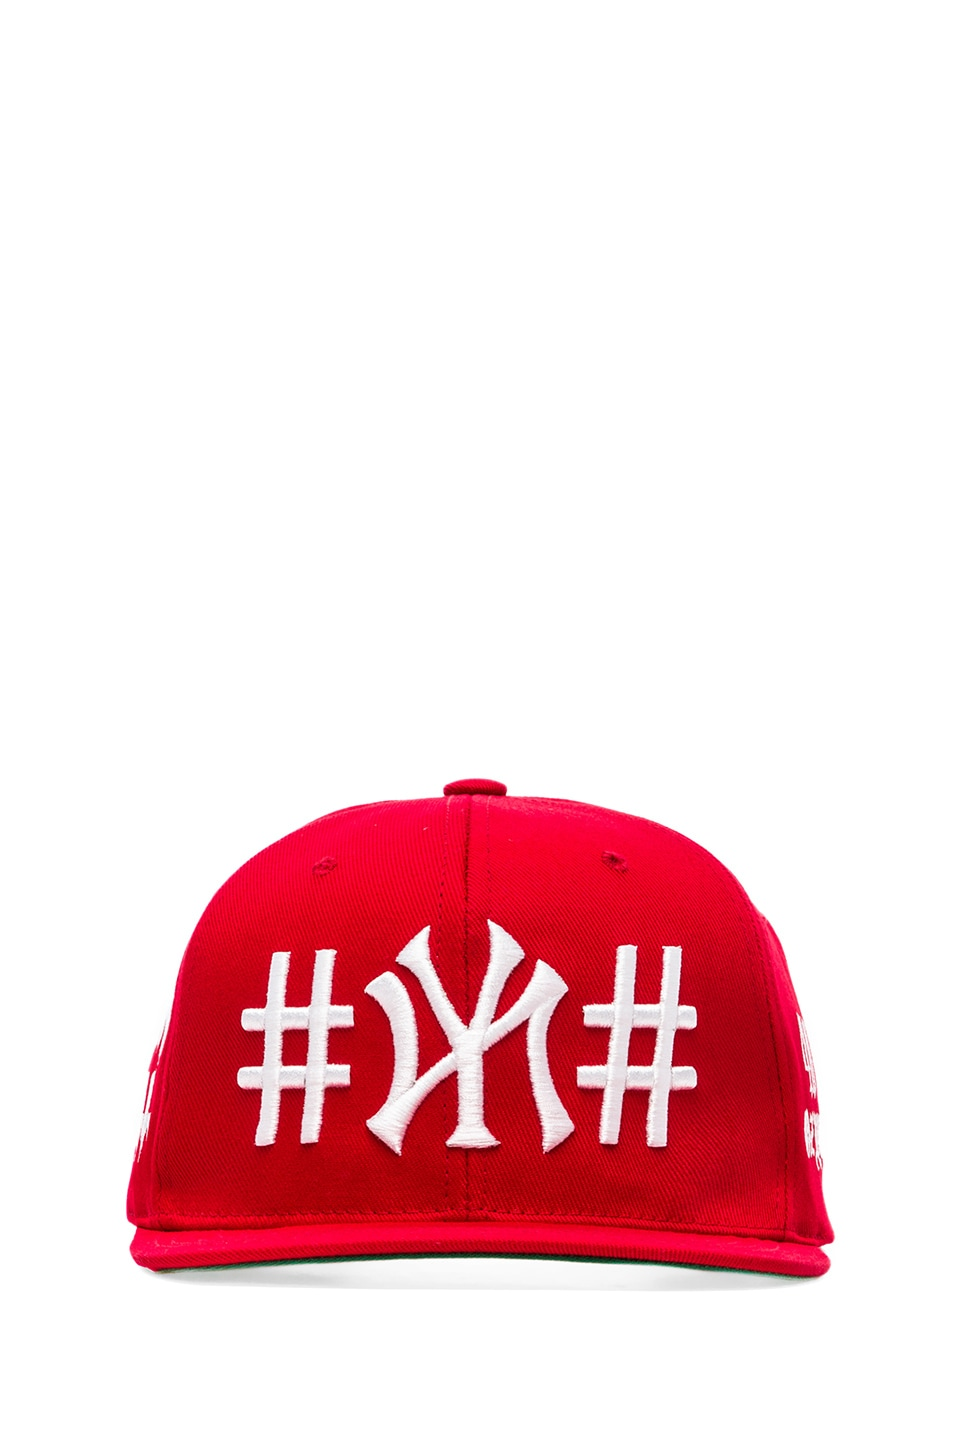 40 OZ NY Been Trill Snapback in Red